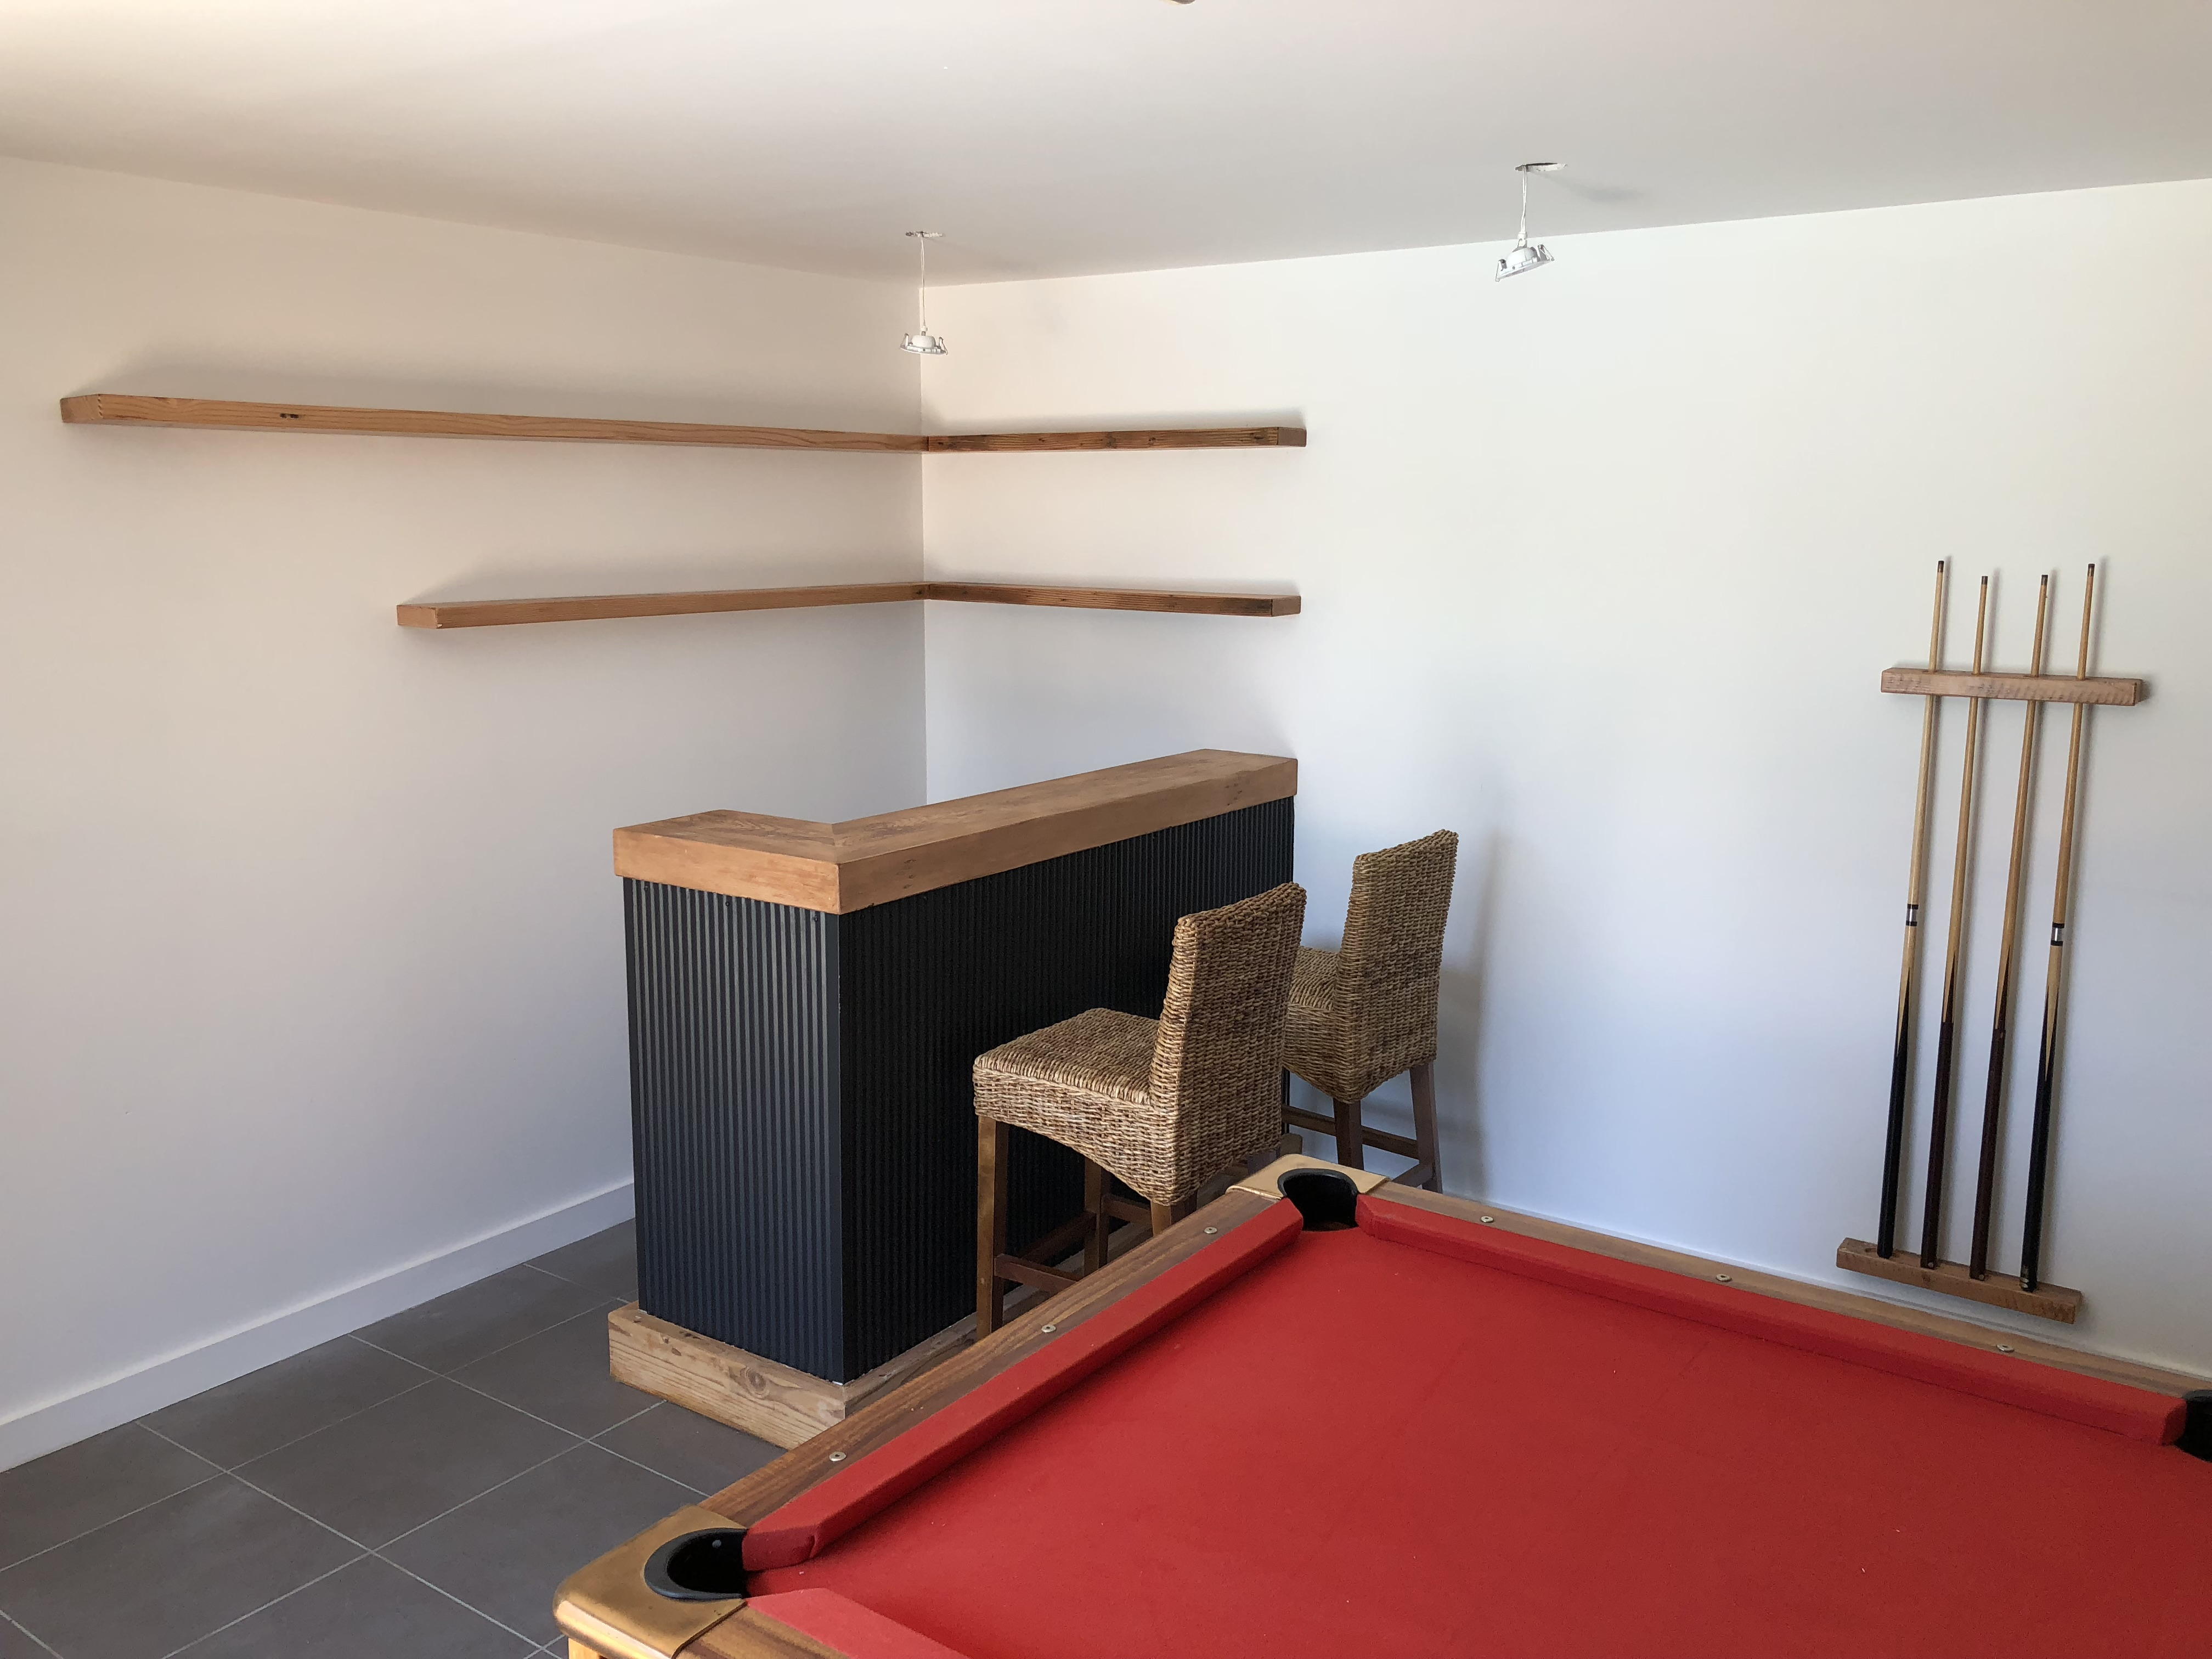 Floating Shelves and Pool Cue Holder